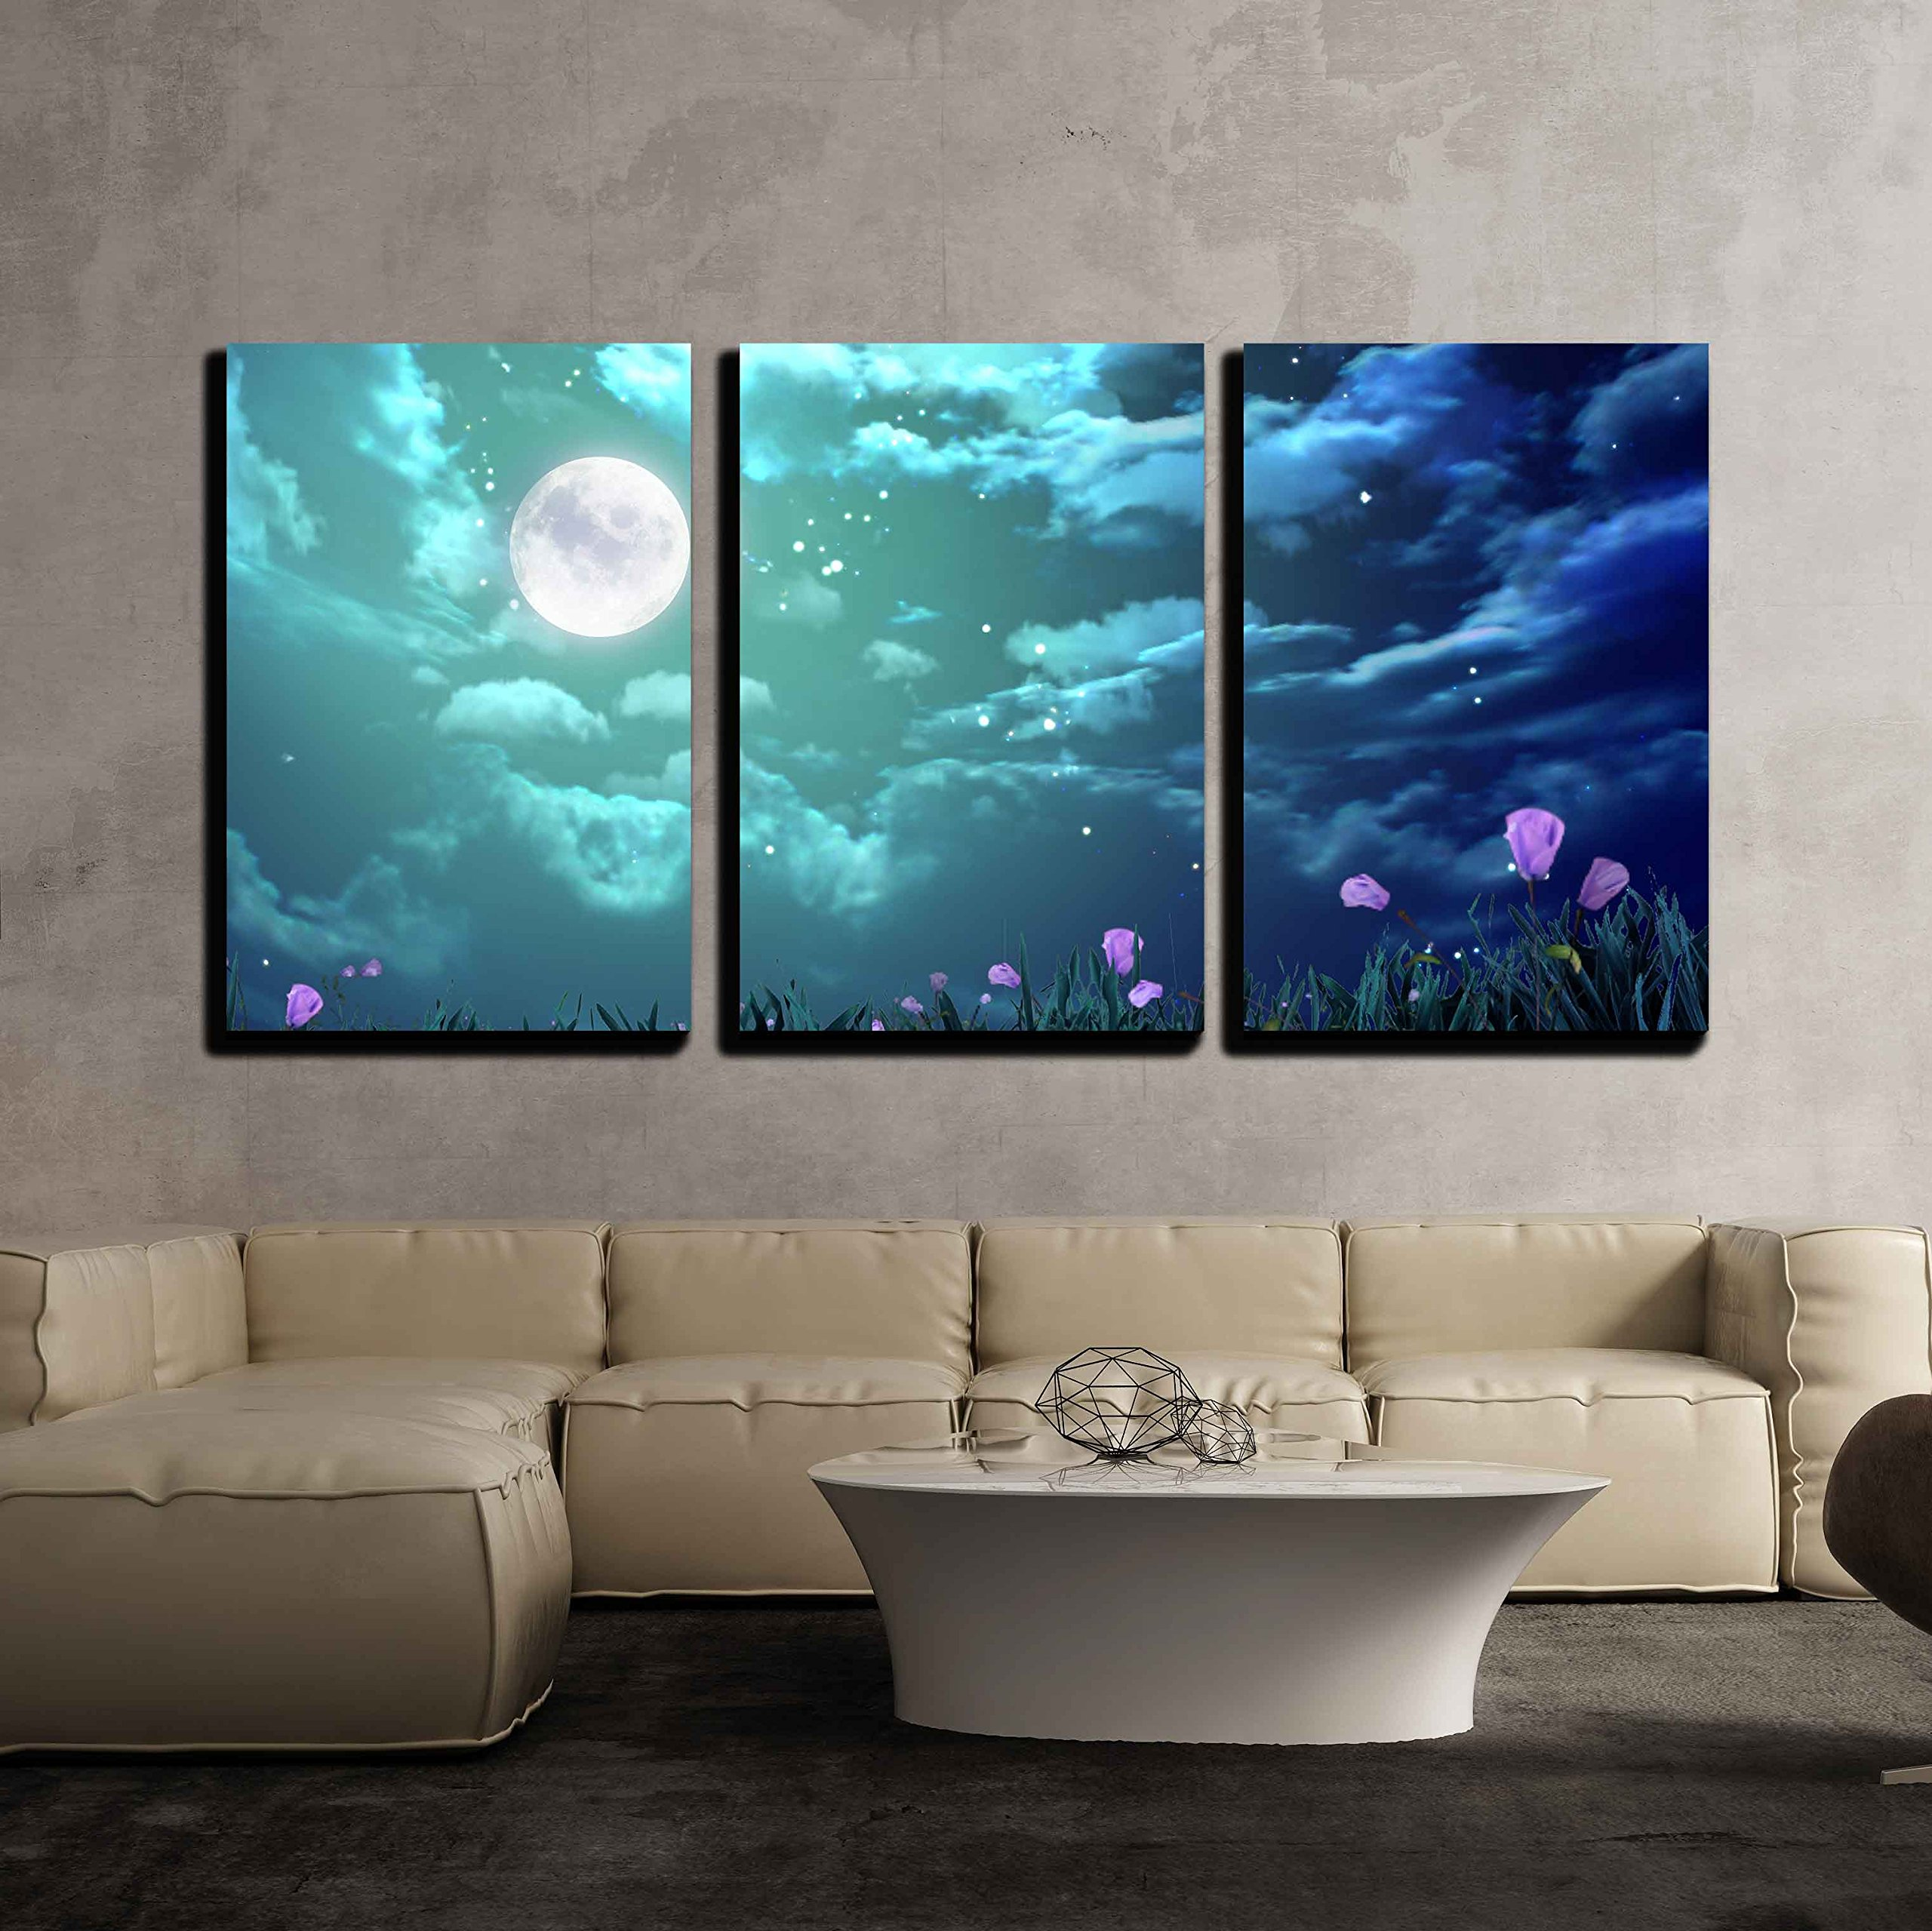 wall26 - 3 Piece Canvas Wall Art - the Beauty Moon in the Night Sky - Modern Home Decor Stretched and Framed Ready to Hang - 24''x36''x3 Panels